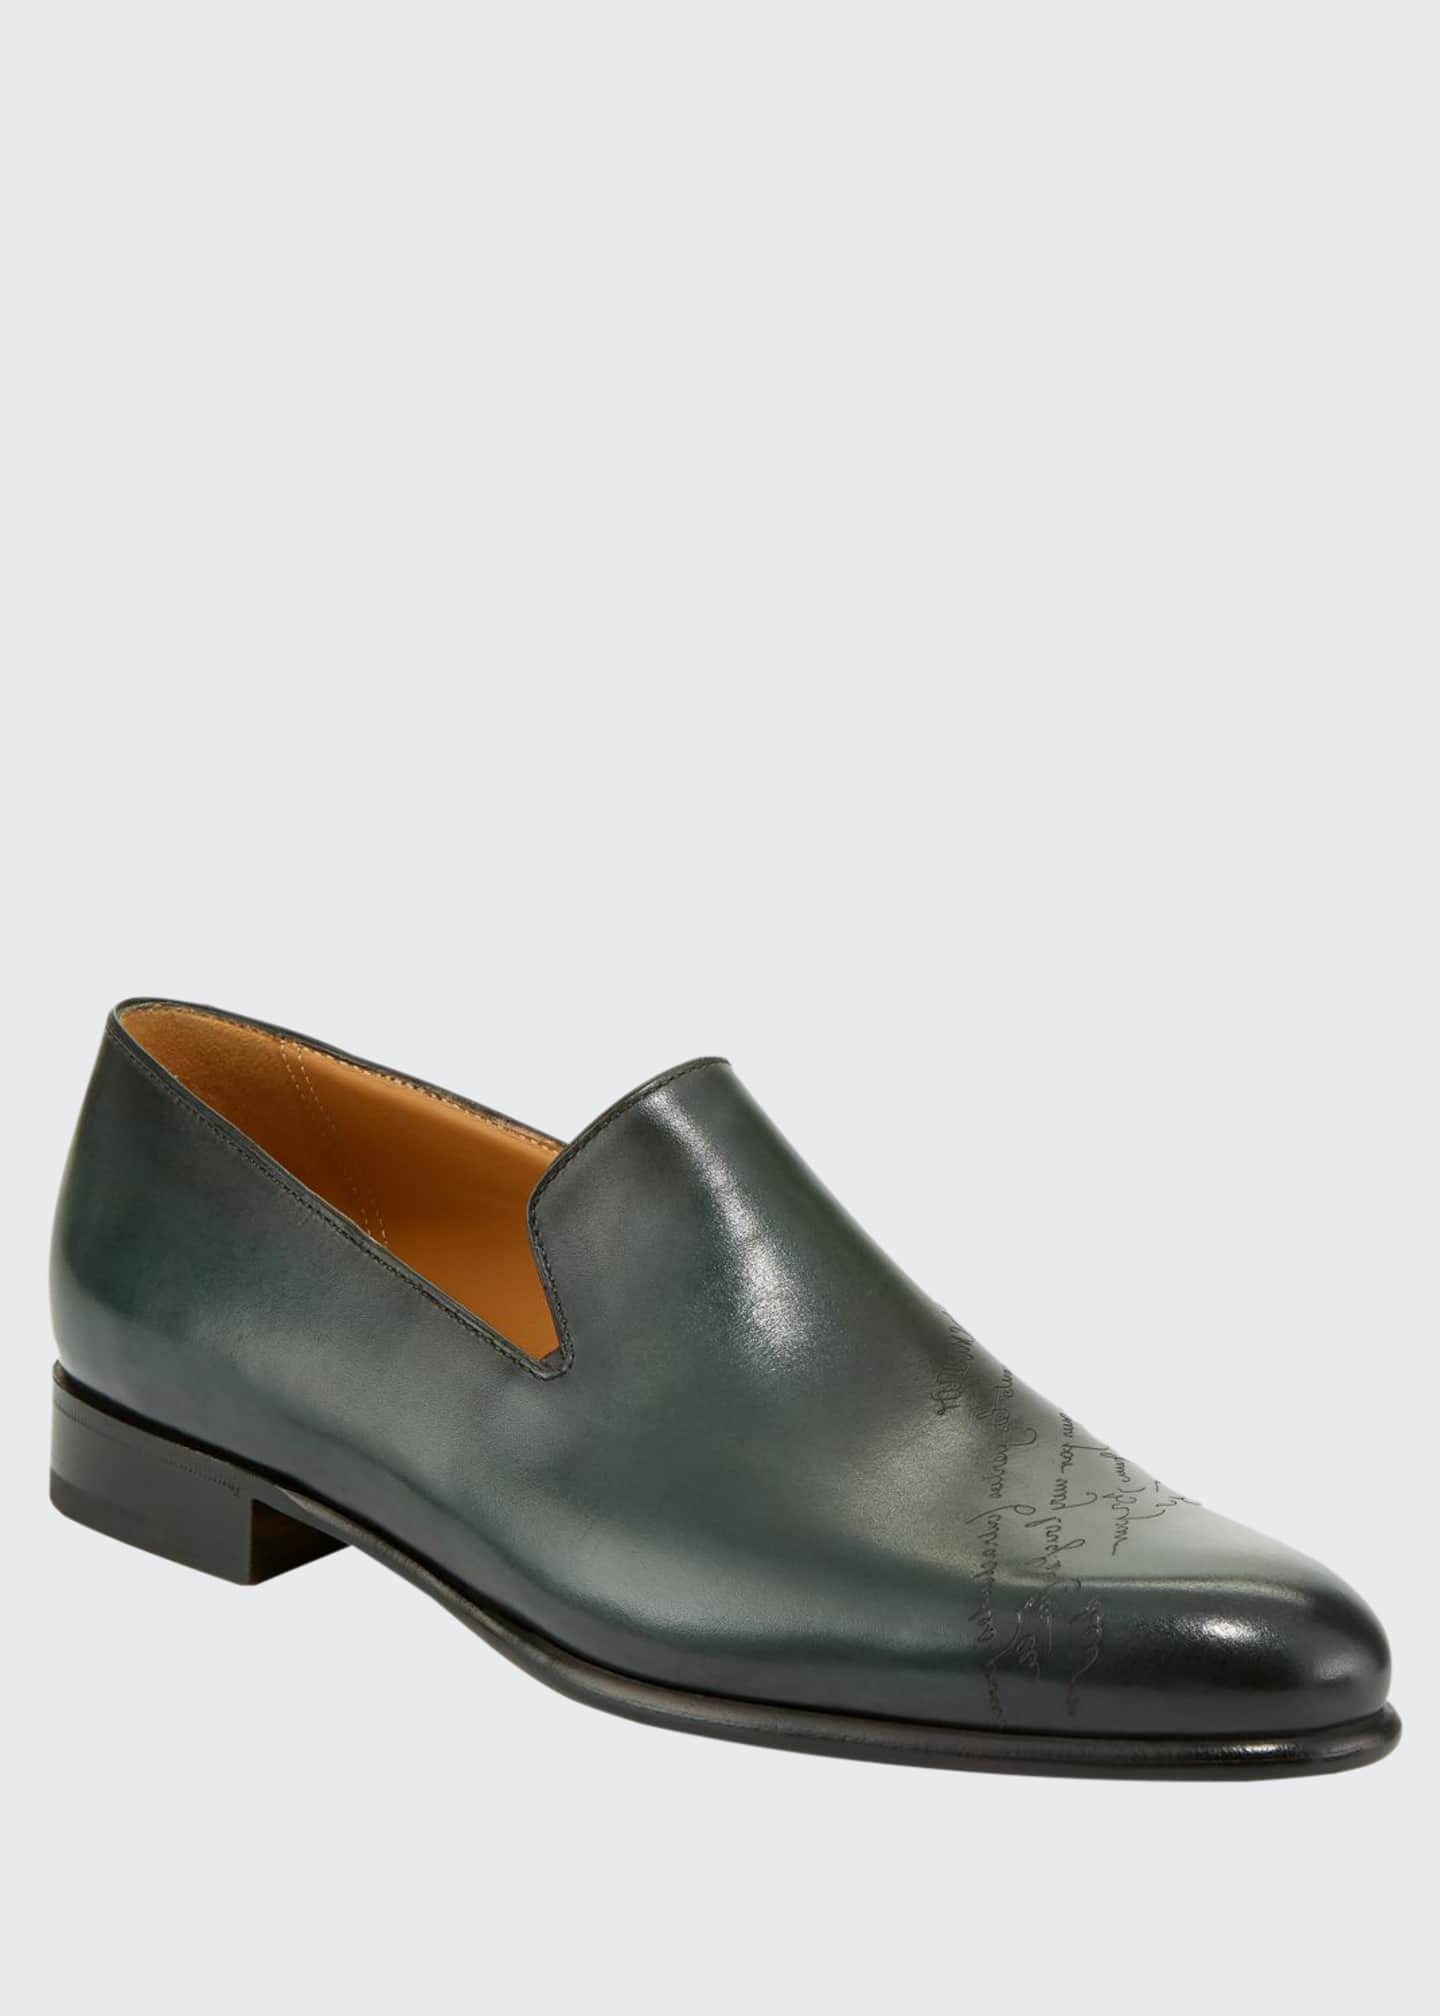 Berluti Men's Cambridge Scritto Leather Slip-On Dress Shoes